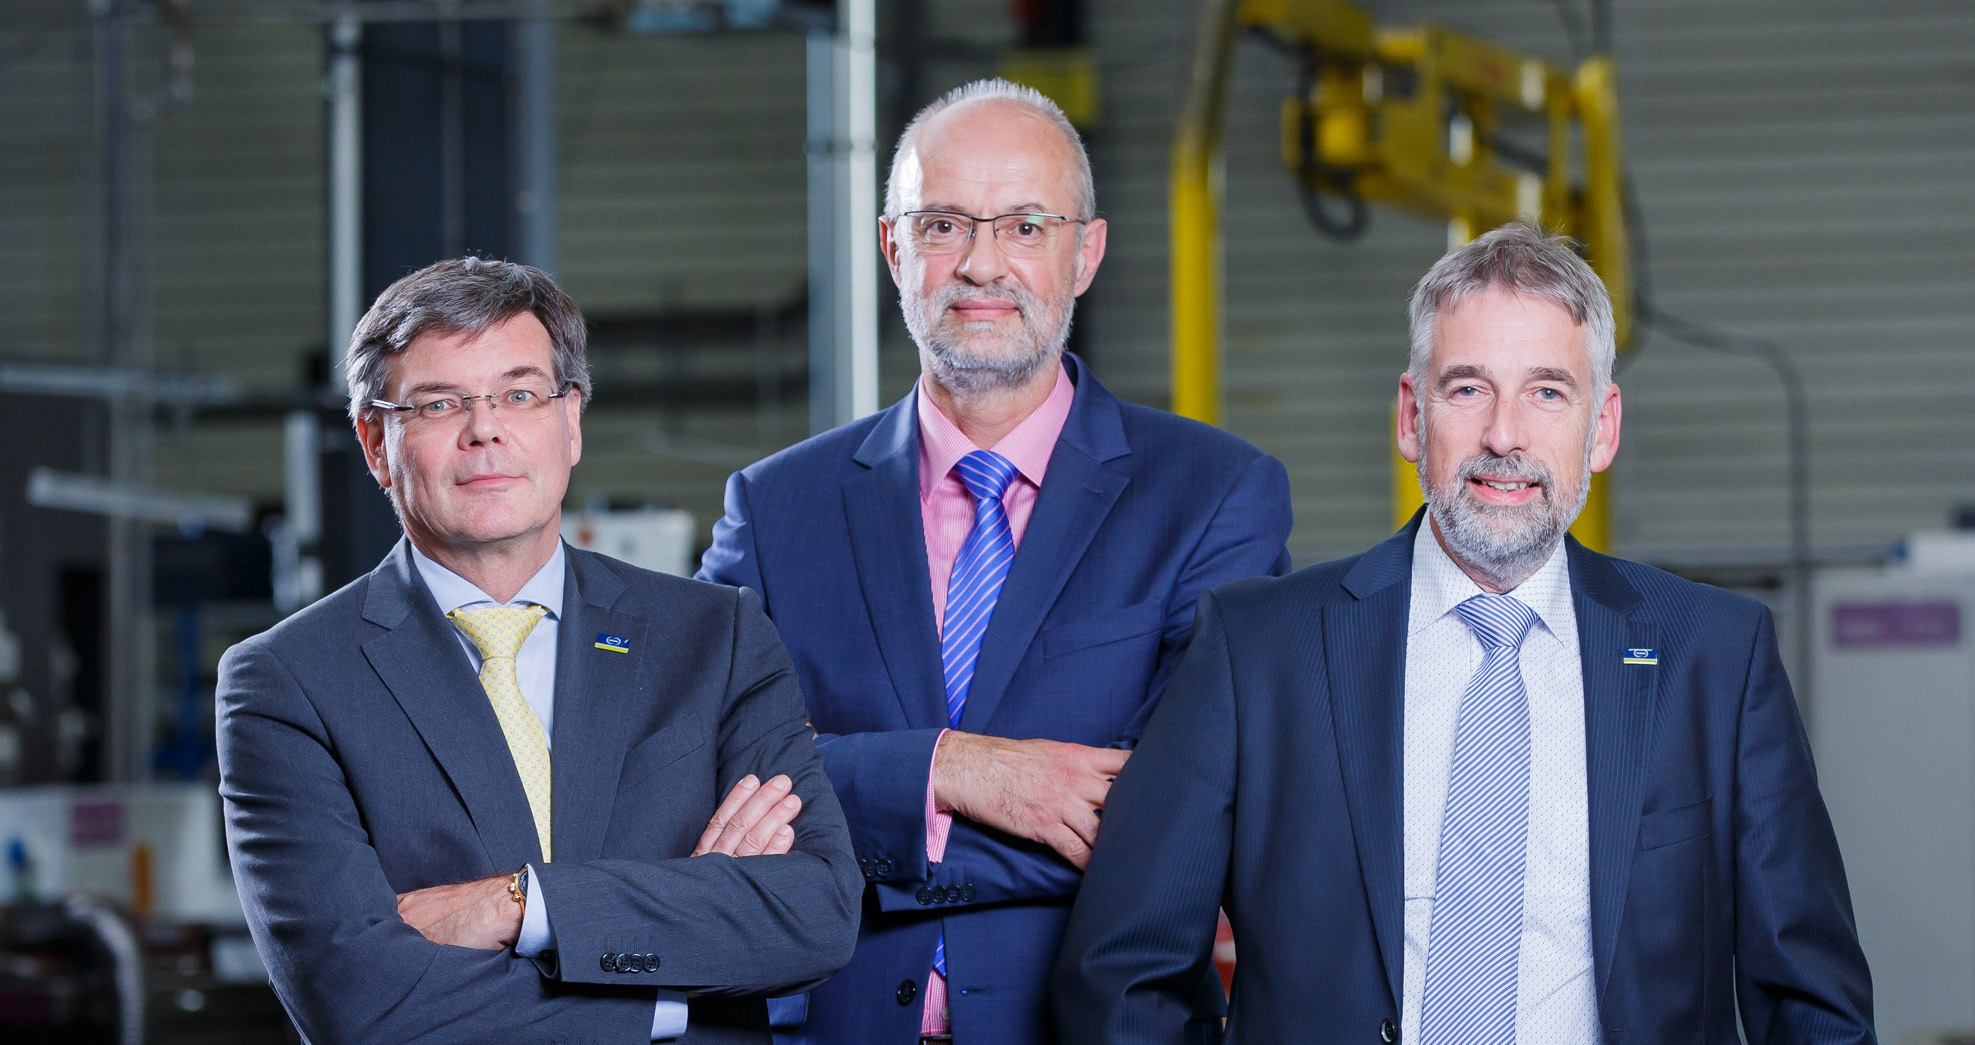 Your employer - Meet the members of the Management Team and find out what they are most proud of when it comes to Schunk Xycarb Technology.